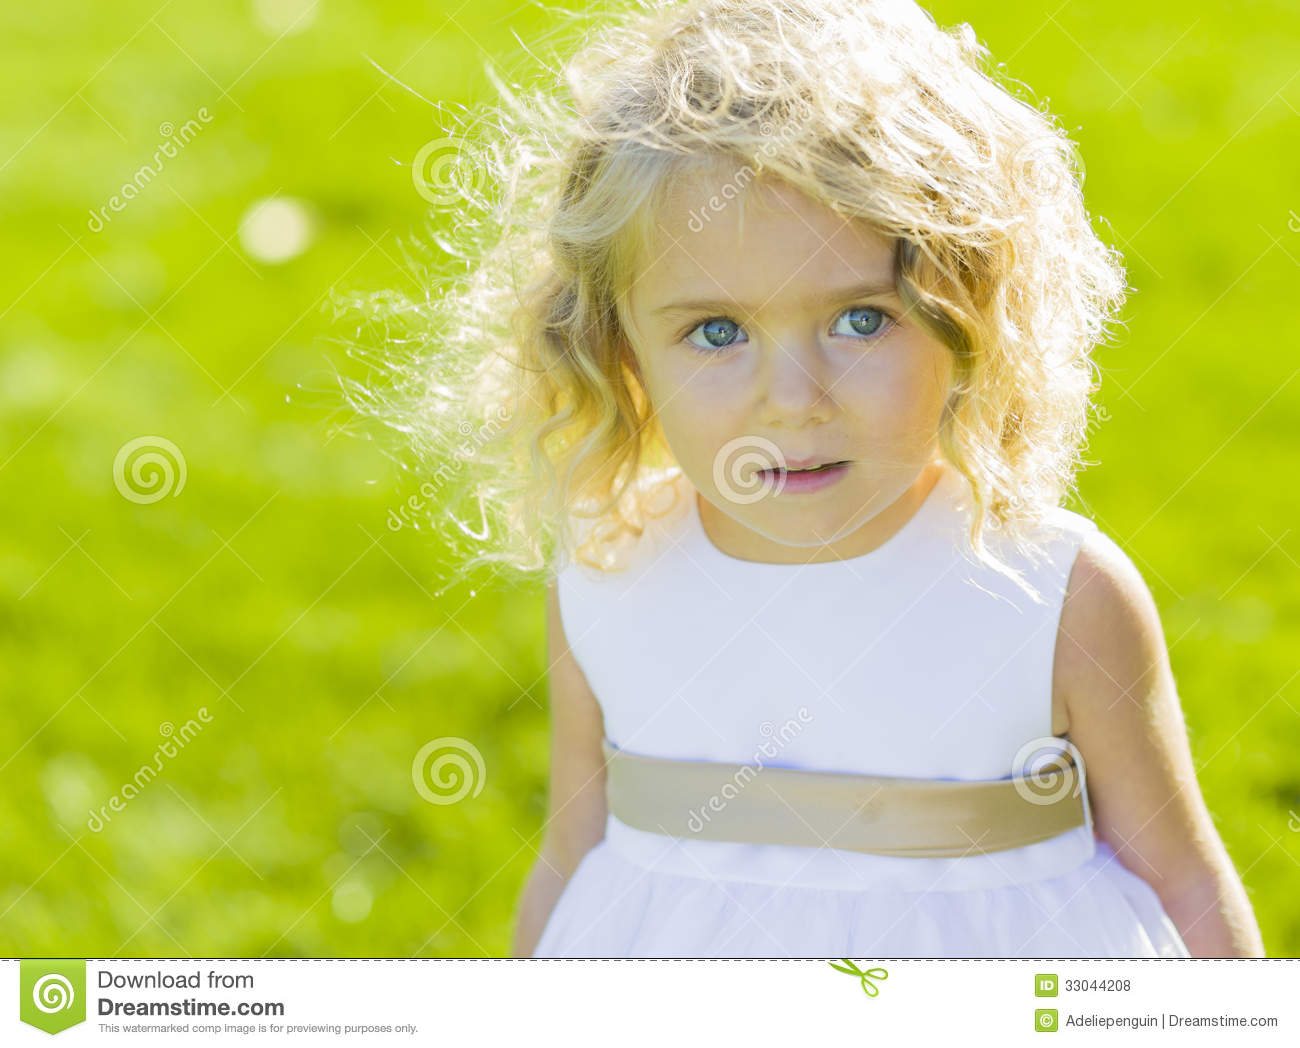 expressive-little-girl-white-dress-prett